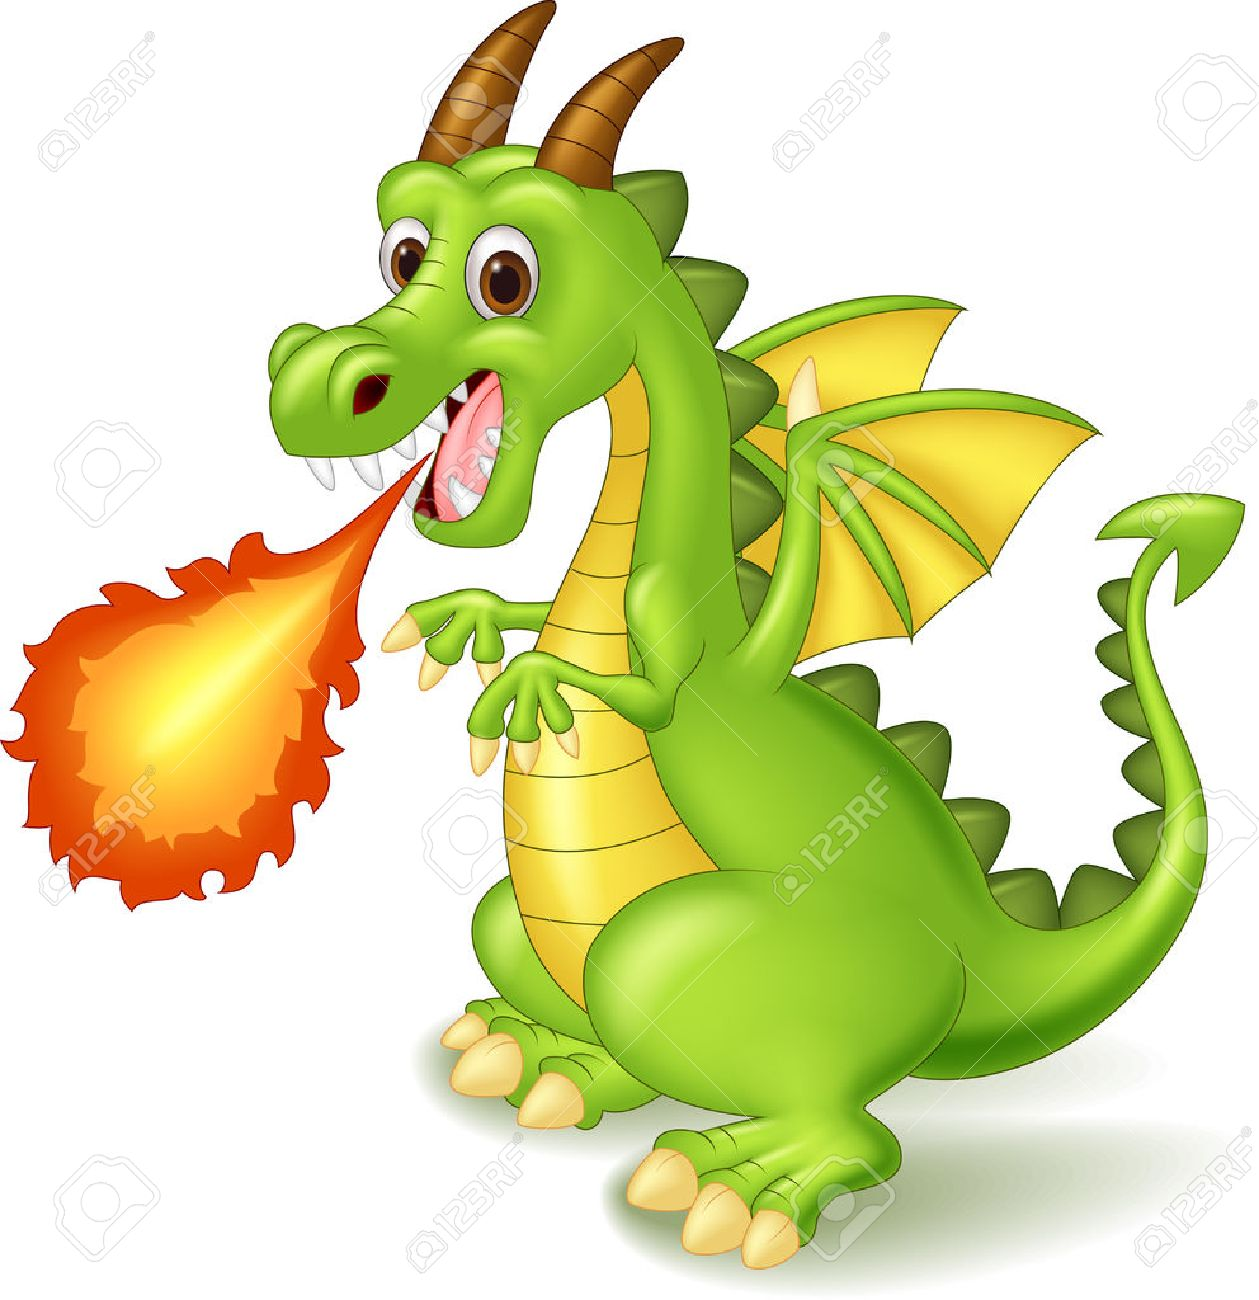 50 564 dragon cliparts stock vector and royalty free dragon rh 123rf com clip art dragon clip art dragons free